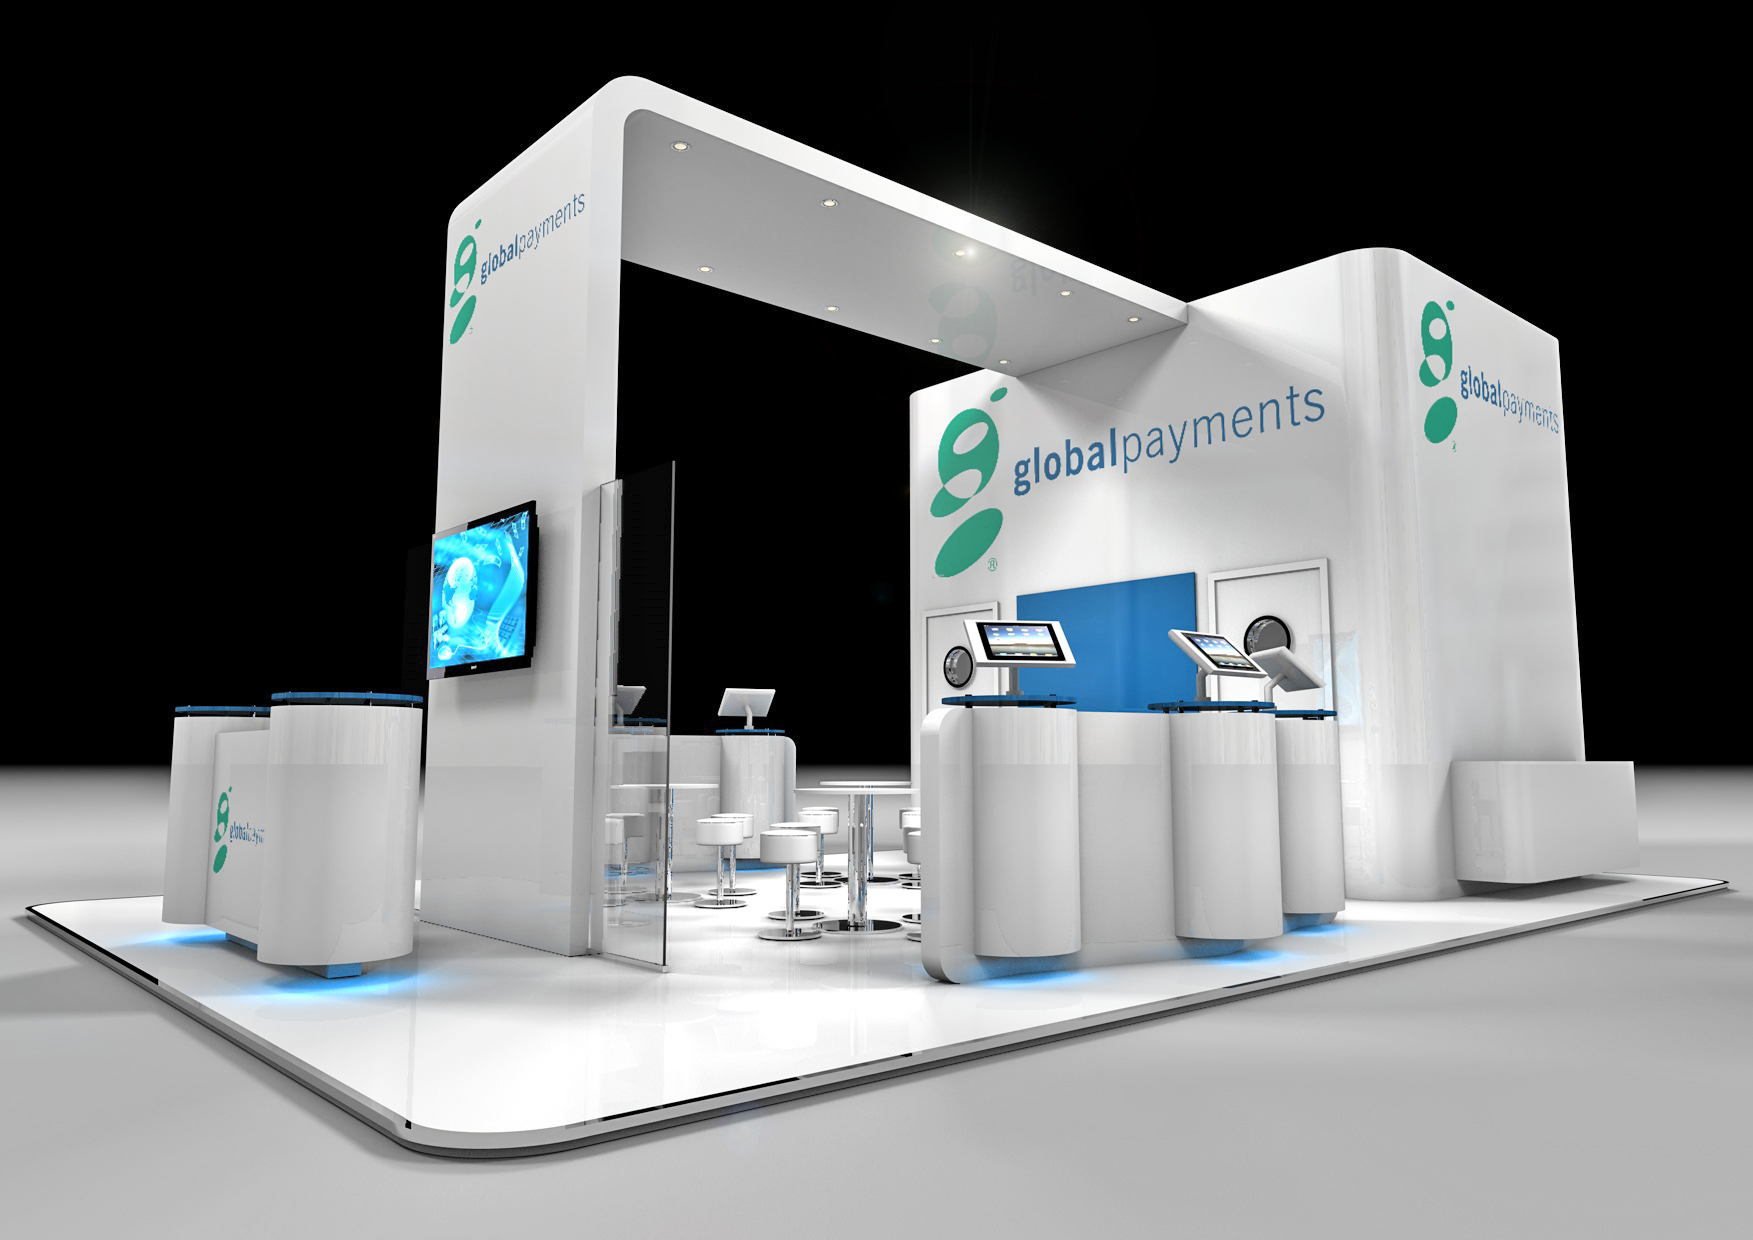 global payments 9m x 6m